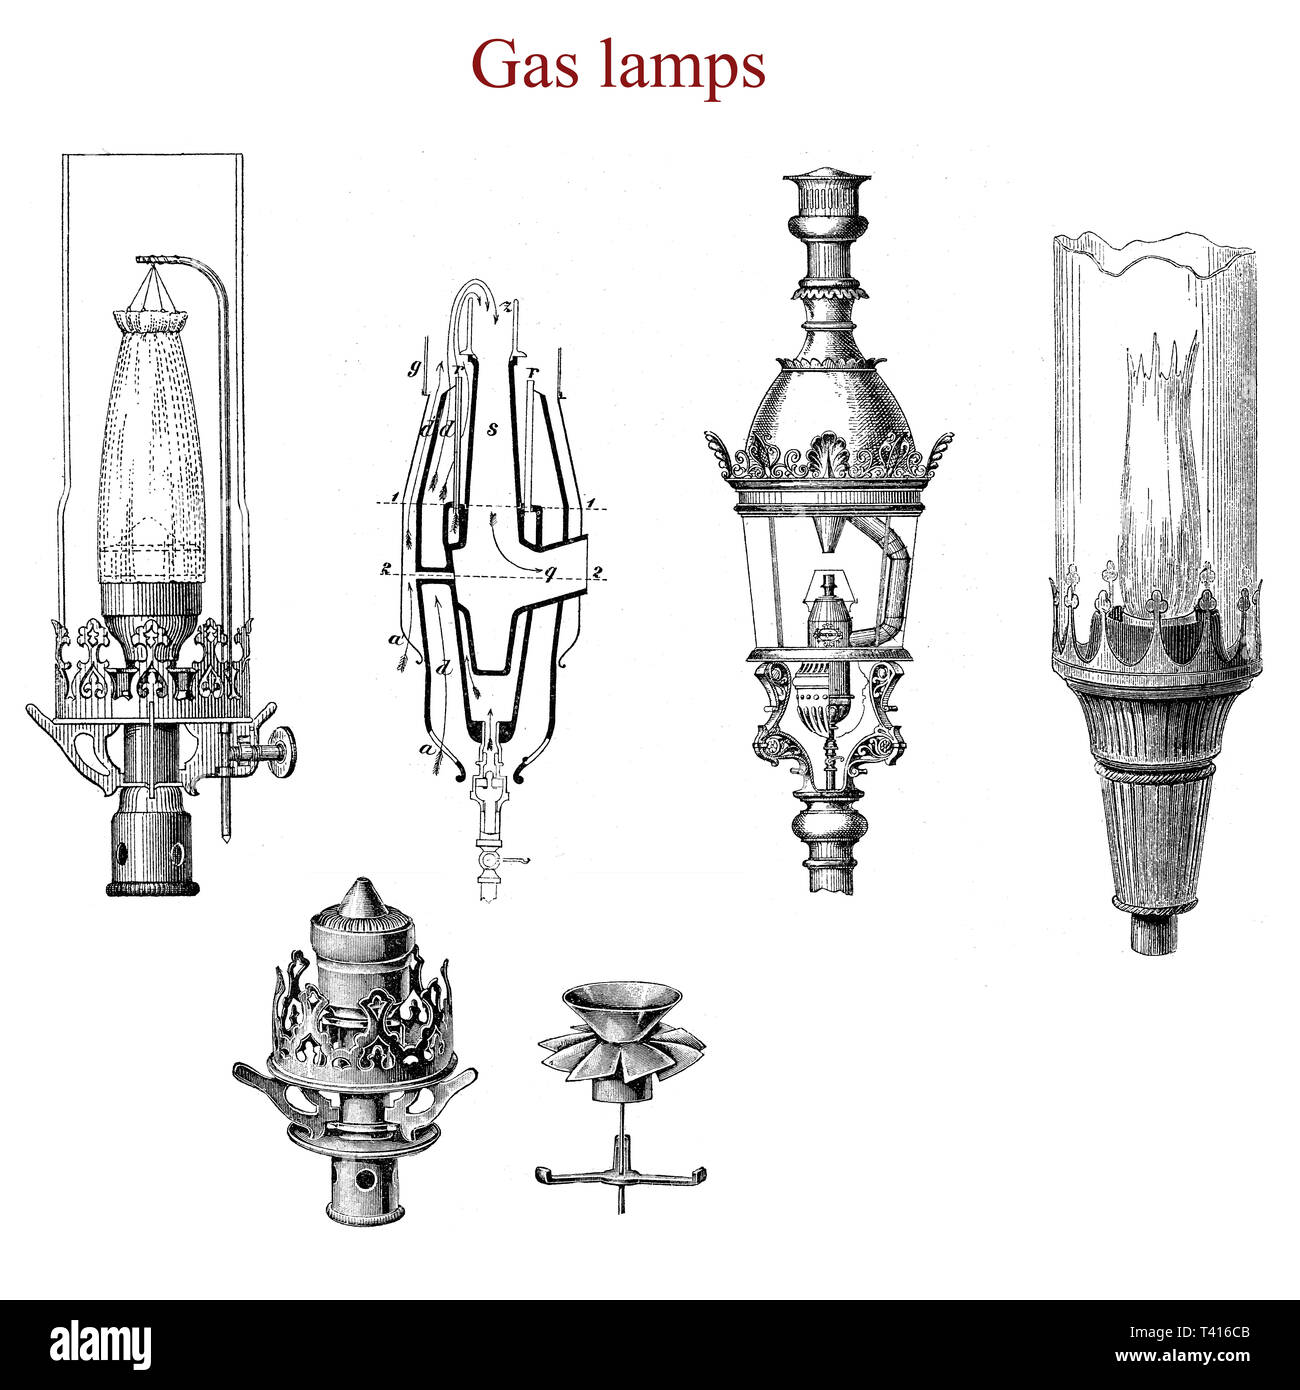 Different kind of gas lamps of the XIX century:from the left Auer, Siemens, Dumas.  Gas lighting is the production of artificial light from combustion of a gaseous fuel. - Stock Image